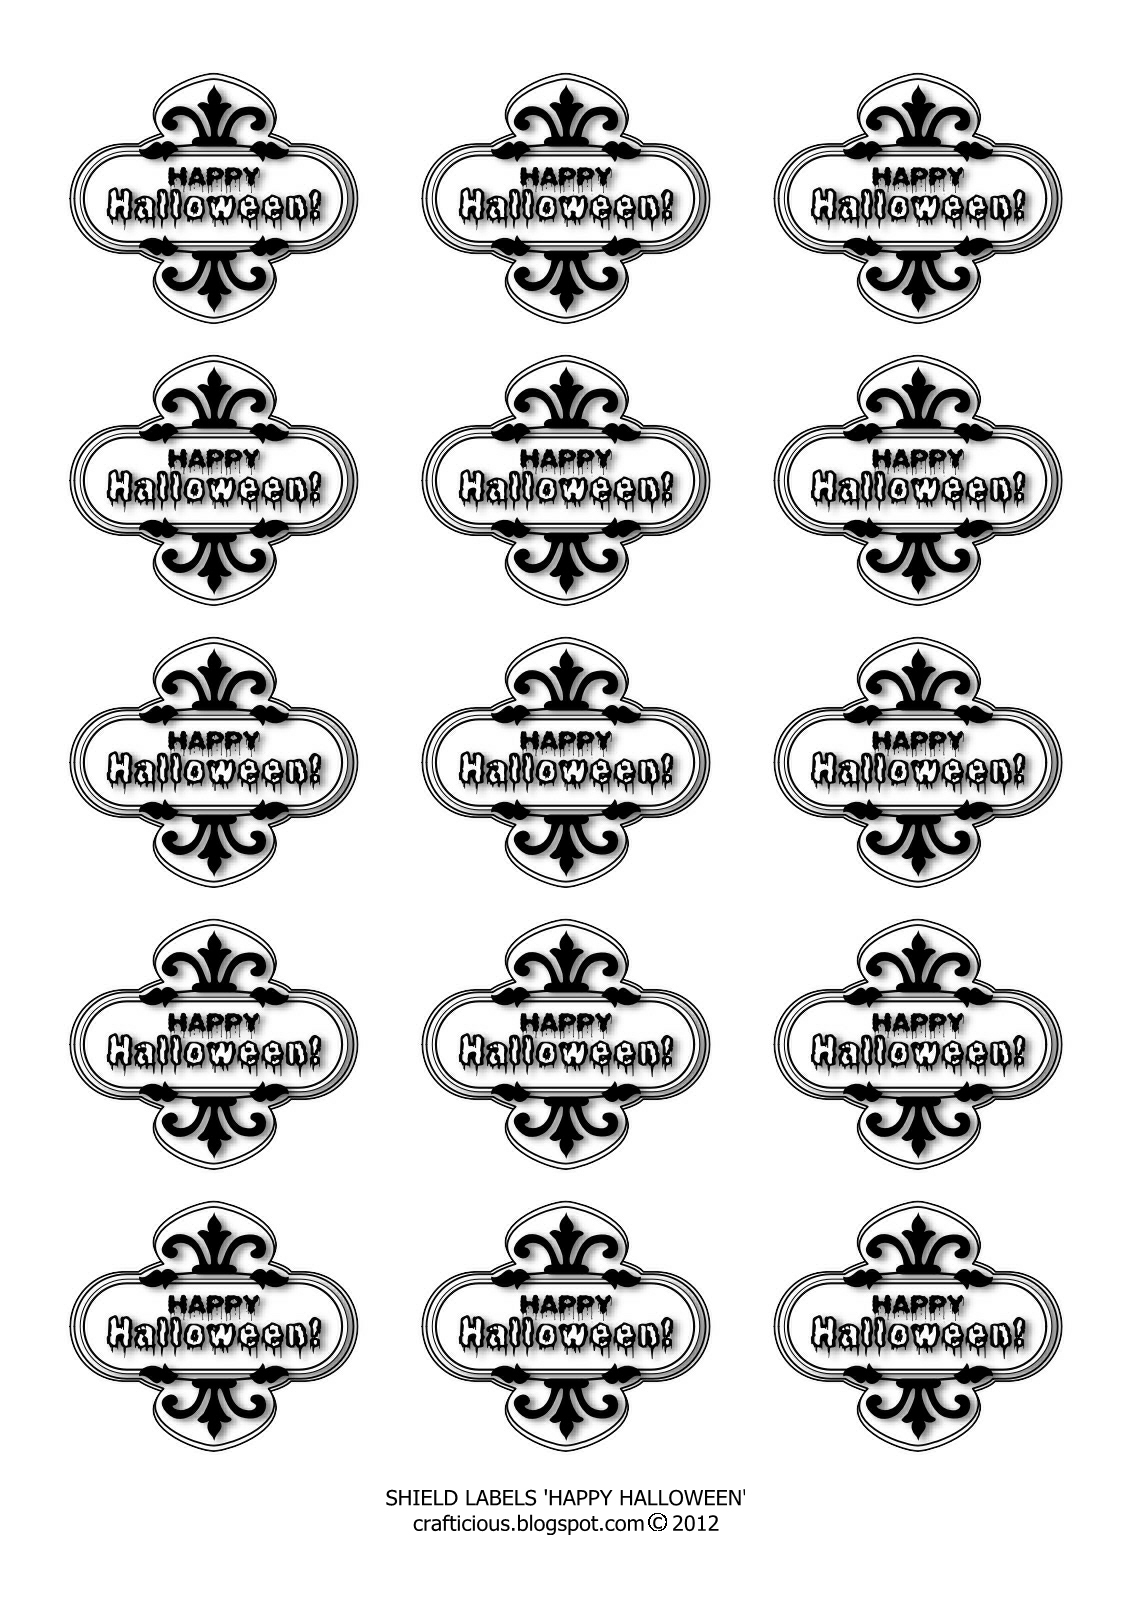 free download halloween skulls labels - Download Halloween Pictures Free